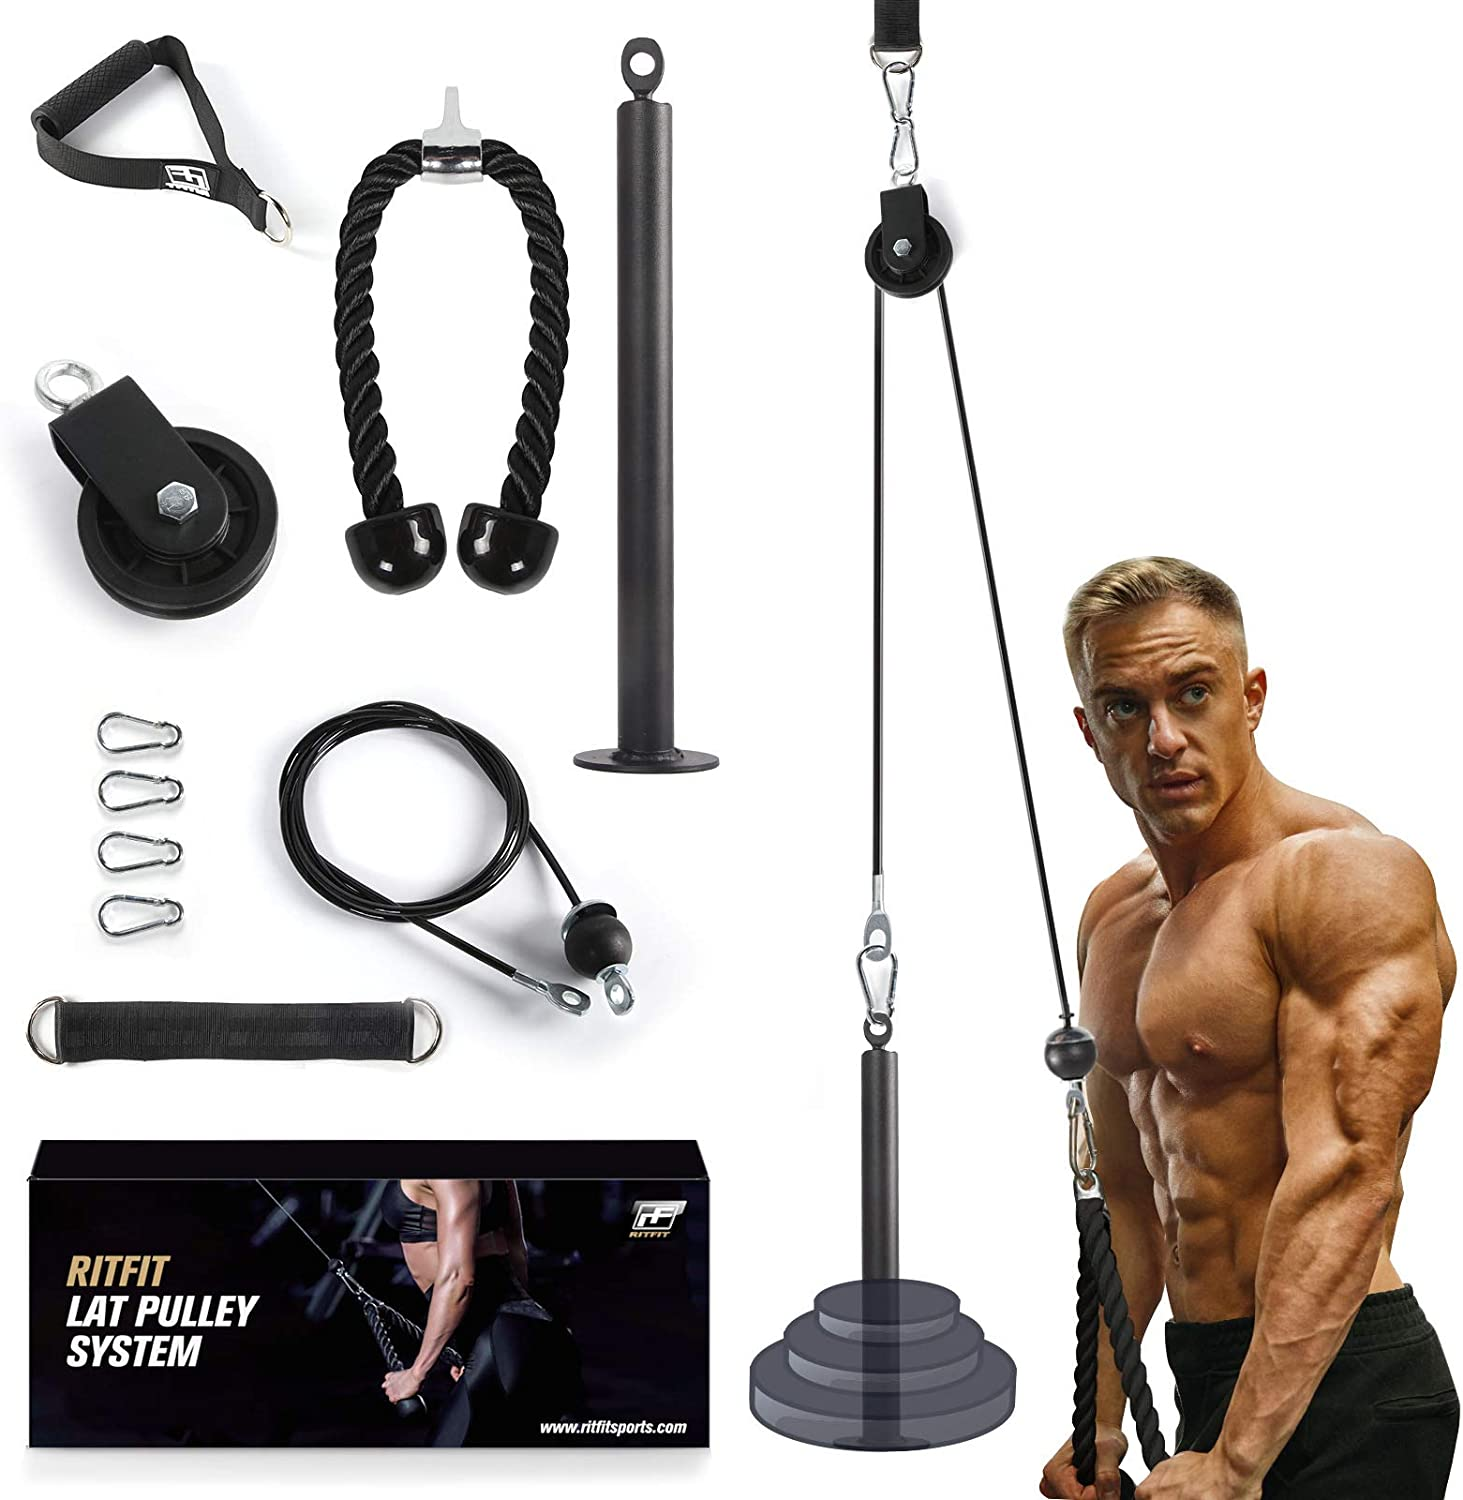 RitFit LAT and Lift Pulley System with Silent Pulley, Loading Pin, Tricep Rope & Handle, DIY Home Gym Equipment for Pull Down, Biceps Curl, Forearm, Shoulder-Strength Workout